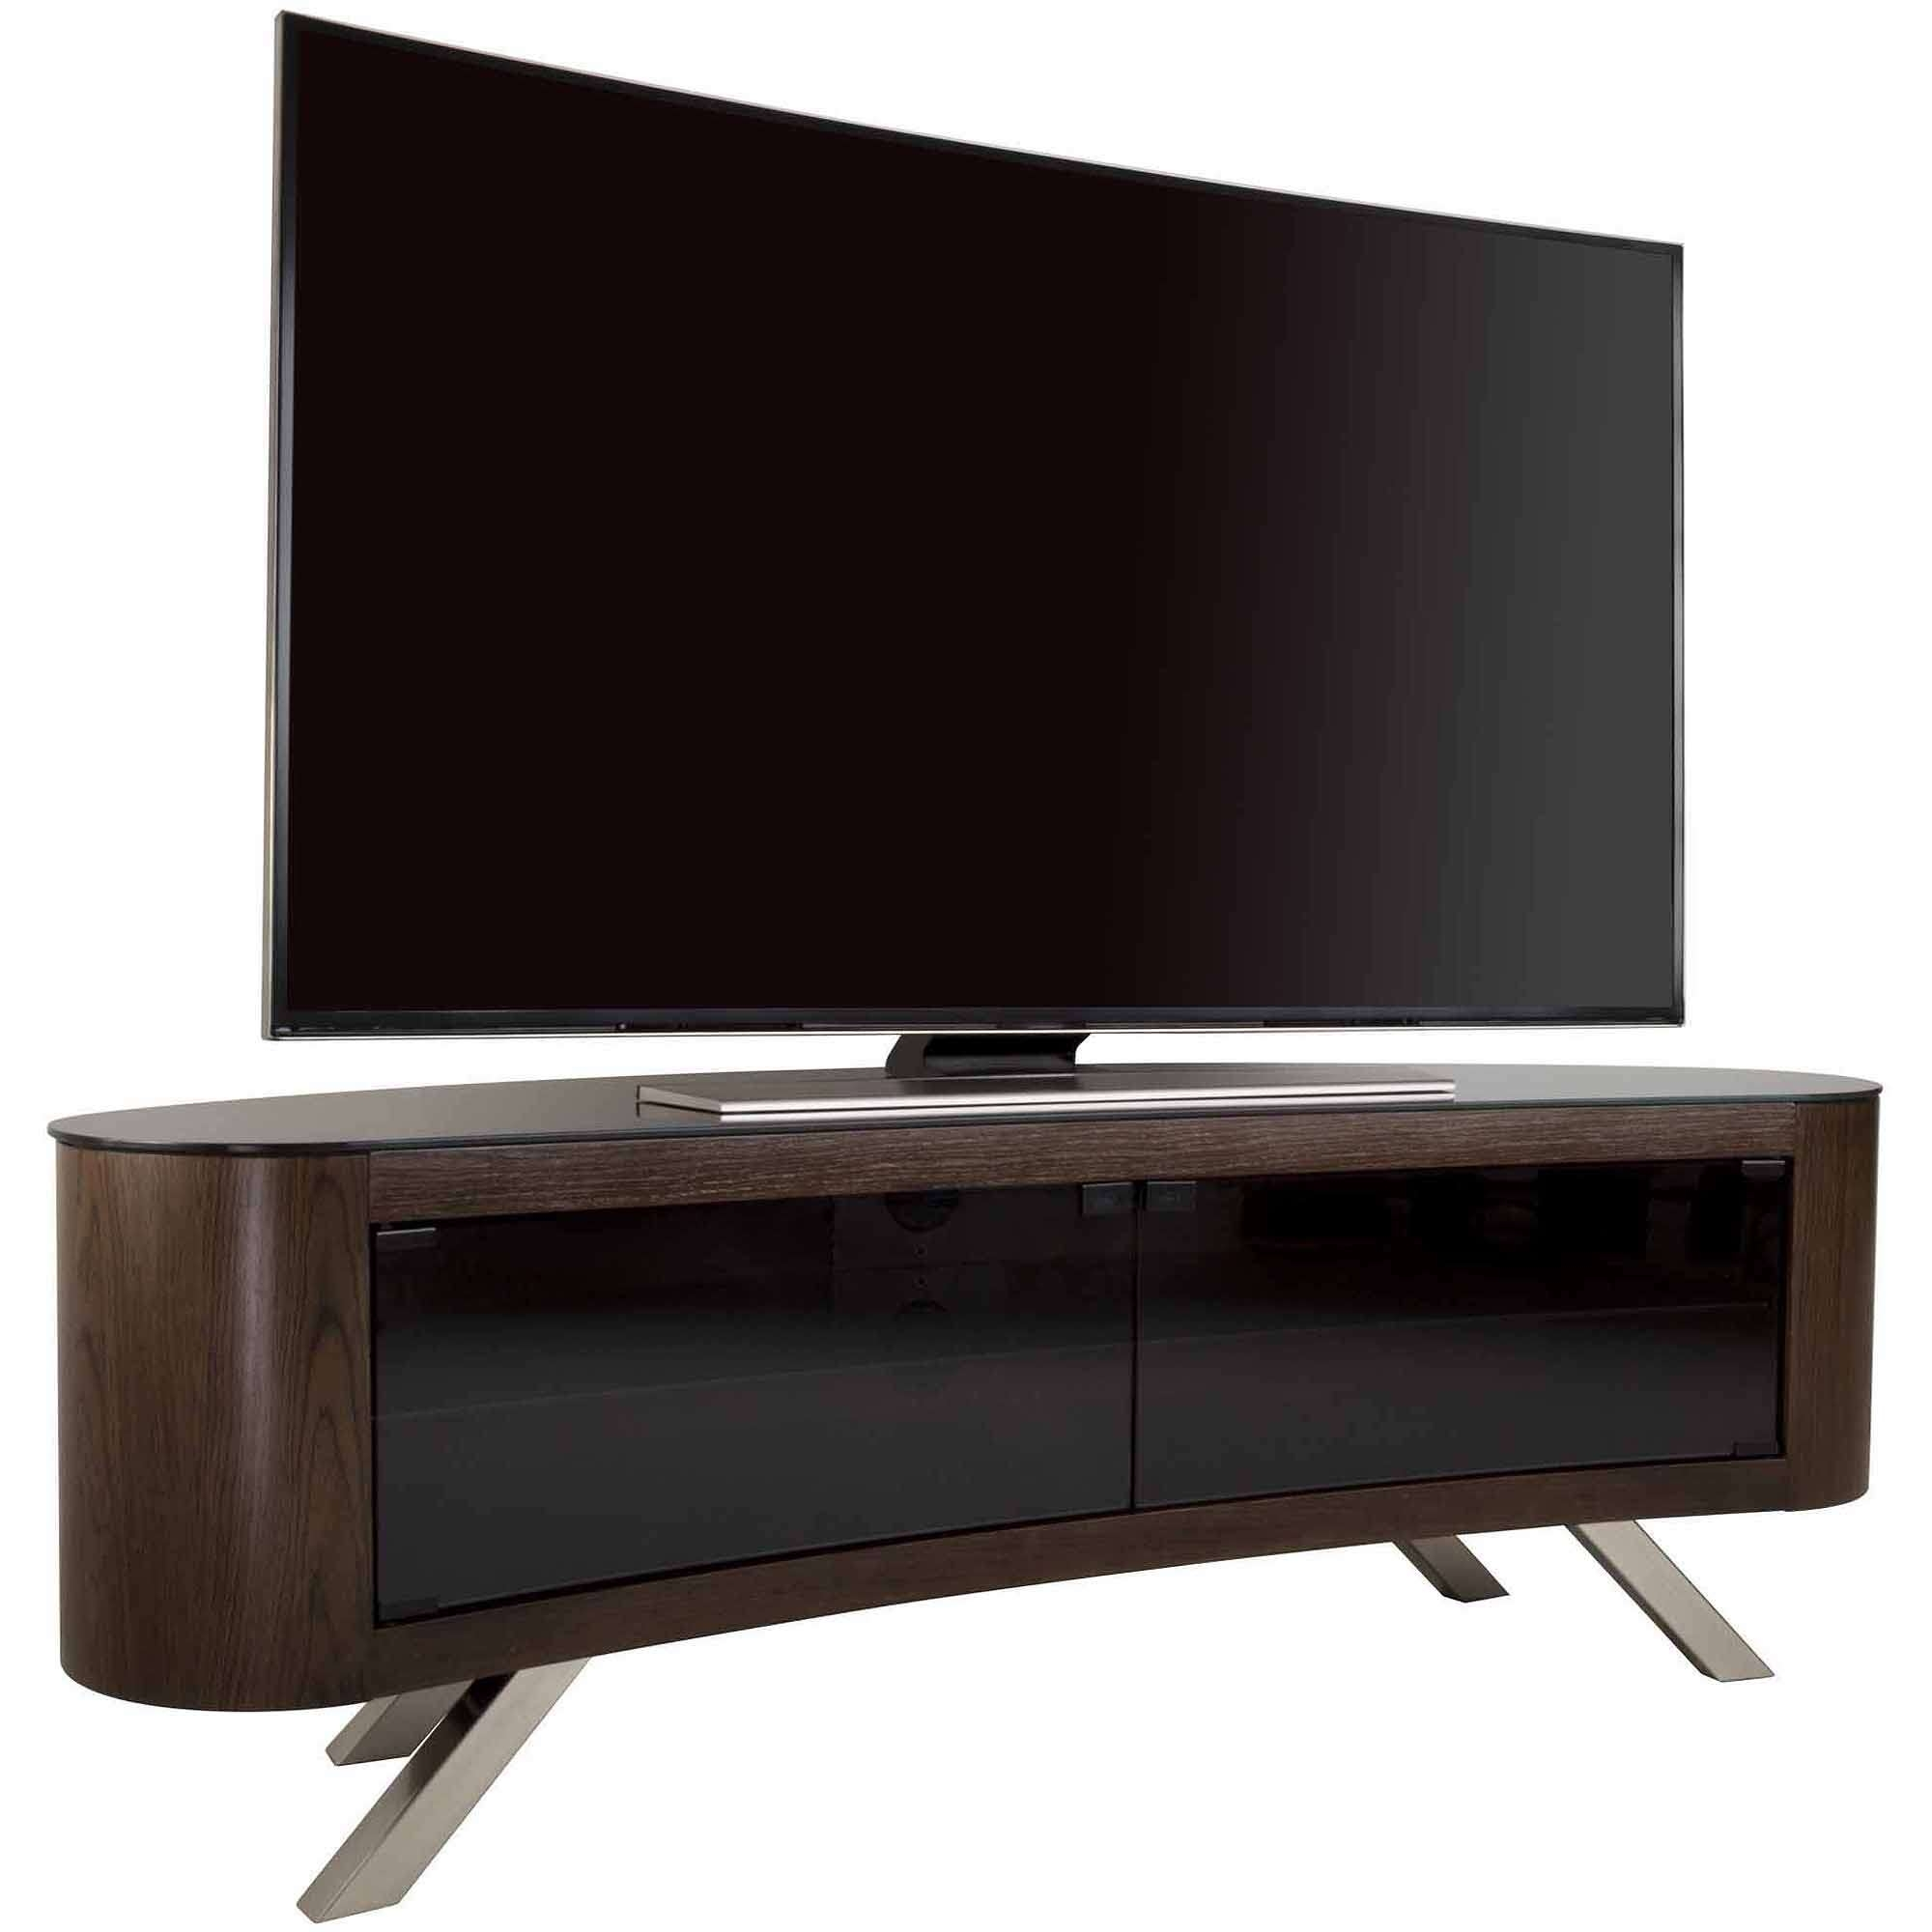 Tv Stand For Inch Flat Screen 0E2B4Cfbe0E8 1 Furnitures Avf Bay Within Tv Stands For 70 Flat Screen (View 11 of 15)